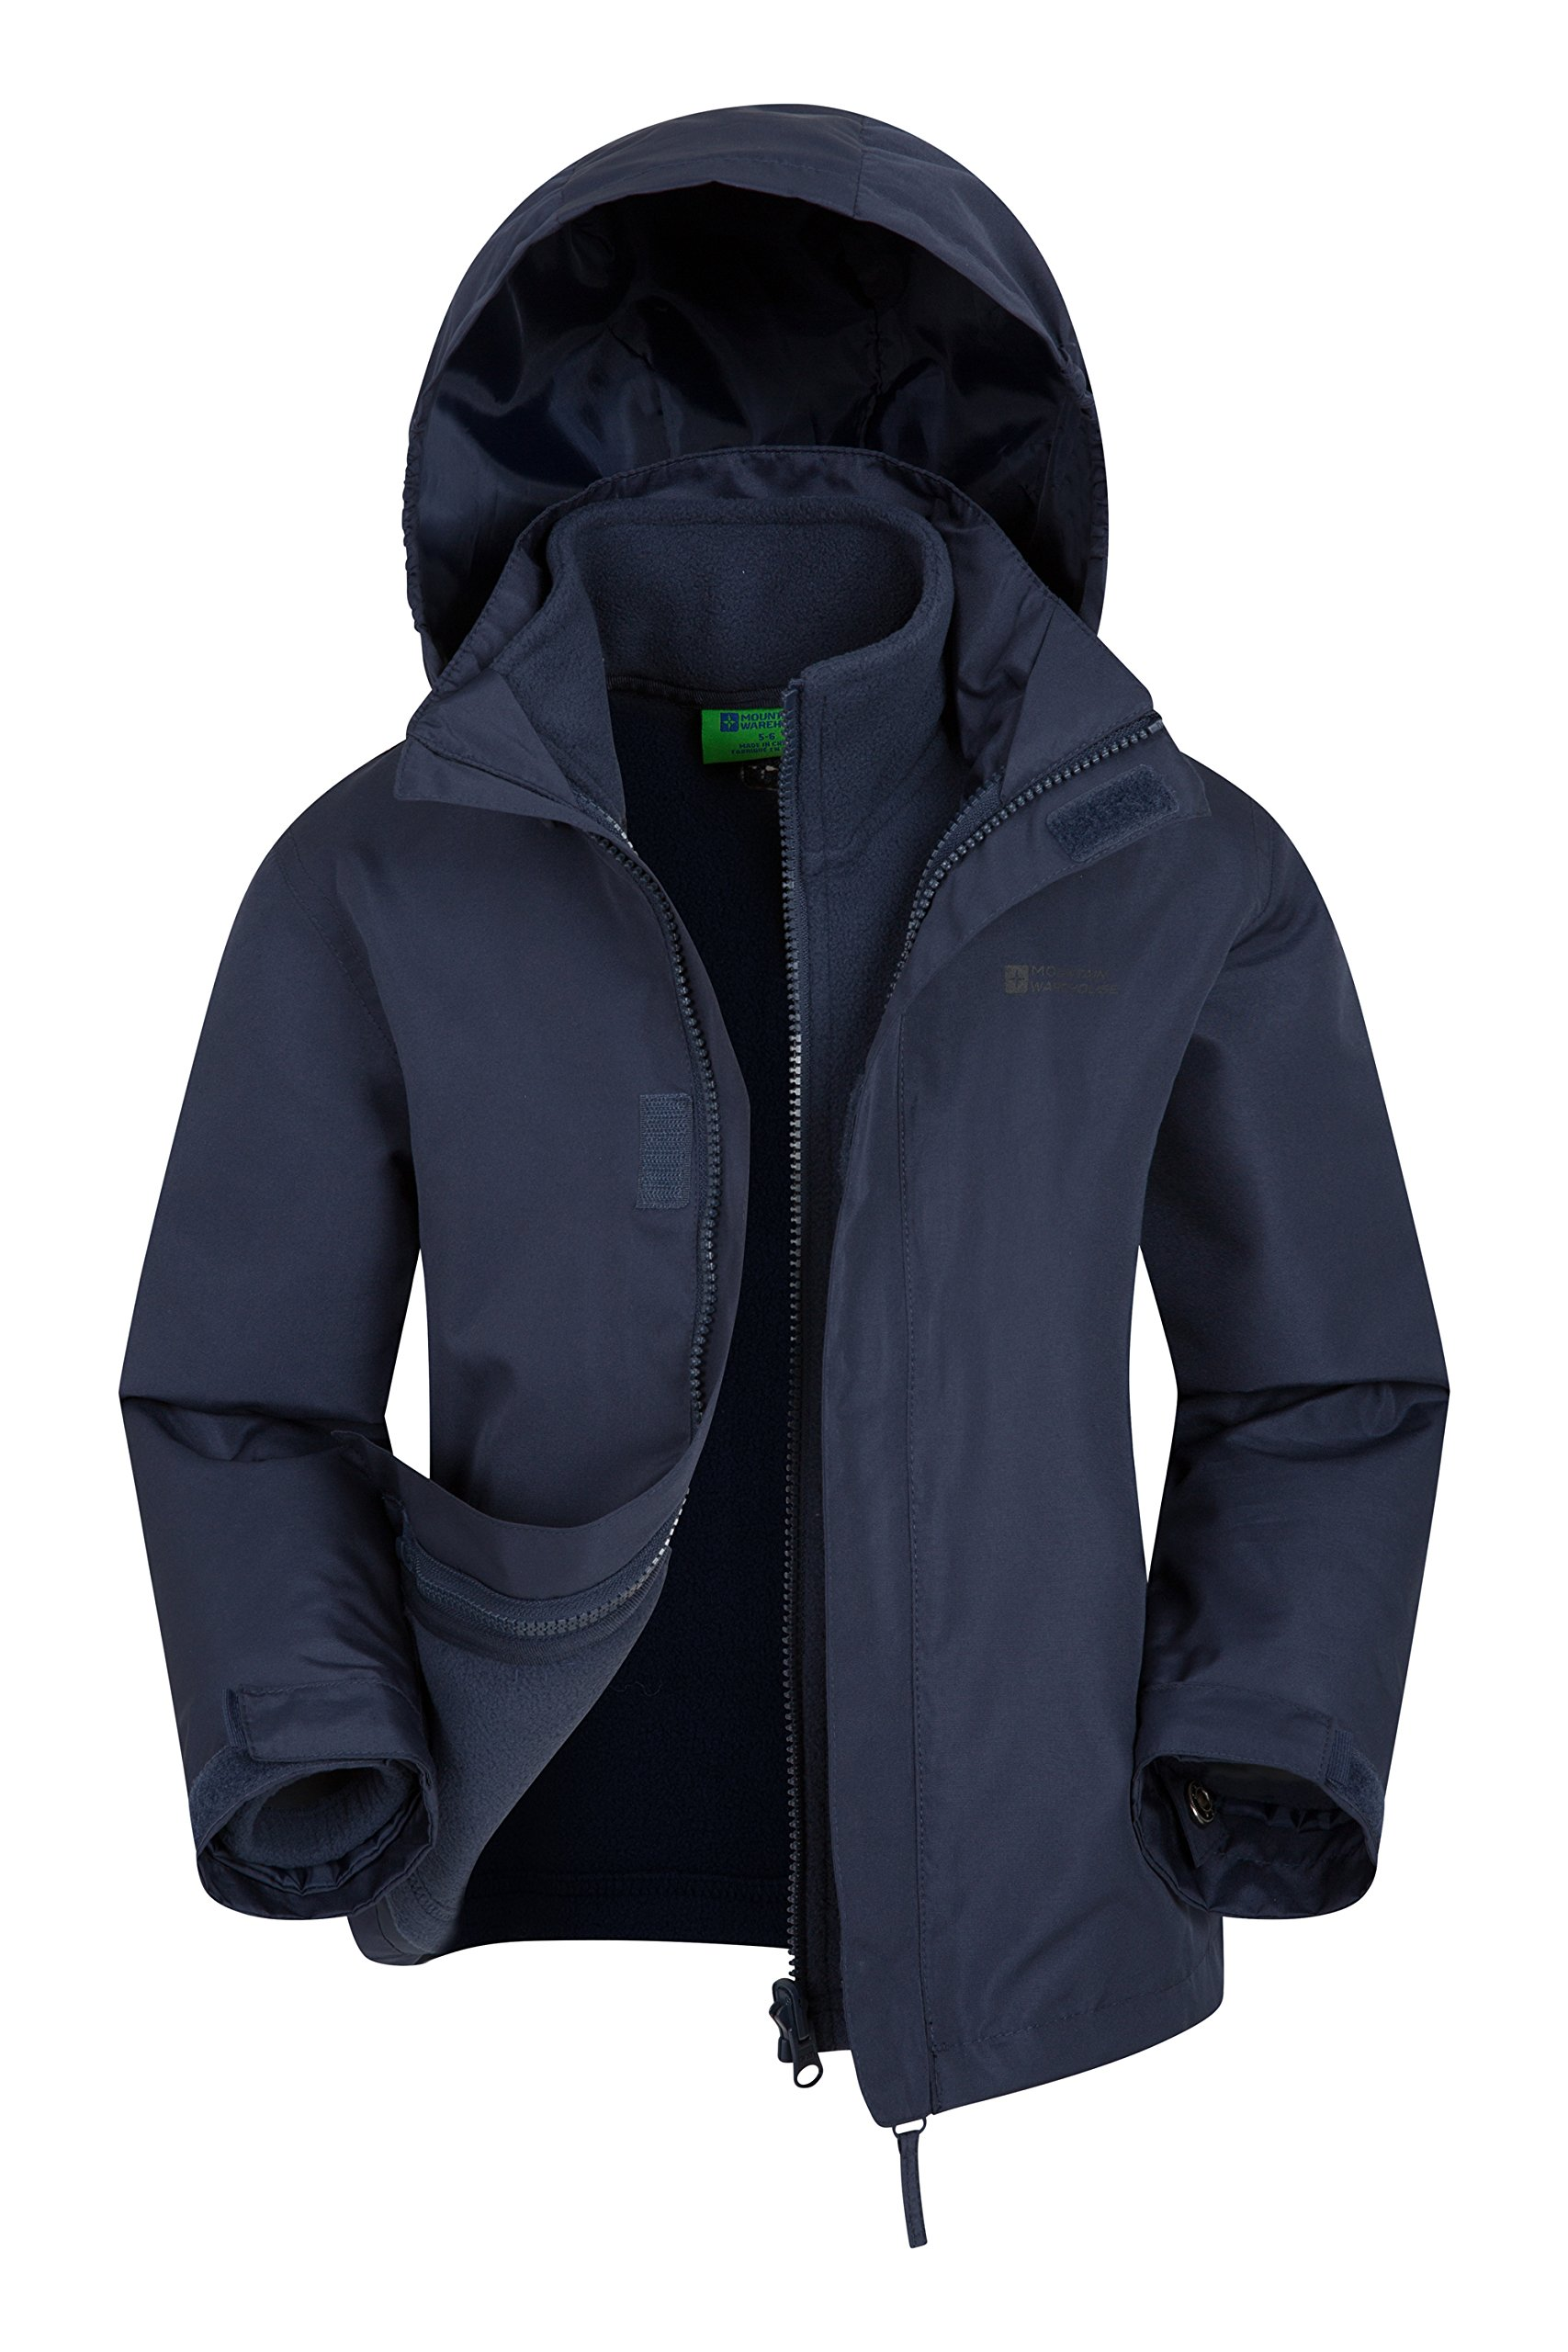 Mountain Warehouse Fell Kids 3 in 1 Jacket - Spring Triclimate Jacket Navy 7-8 Years